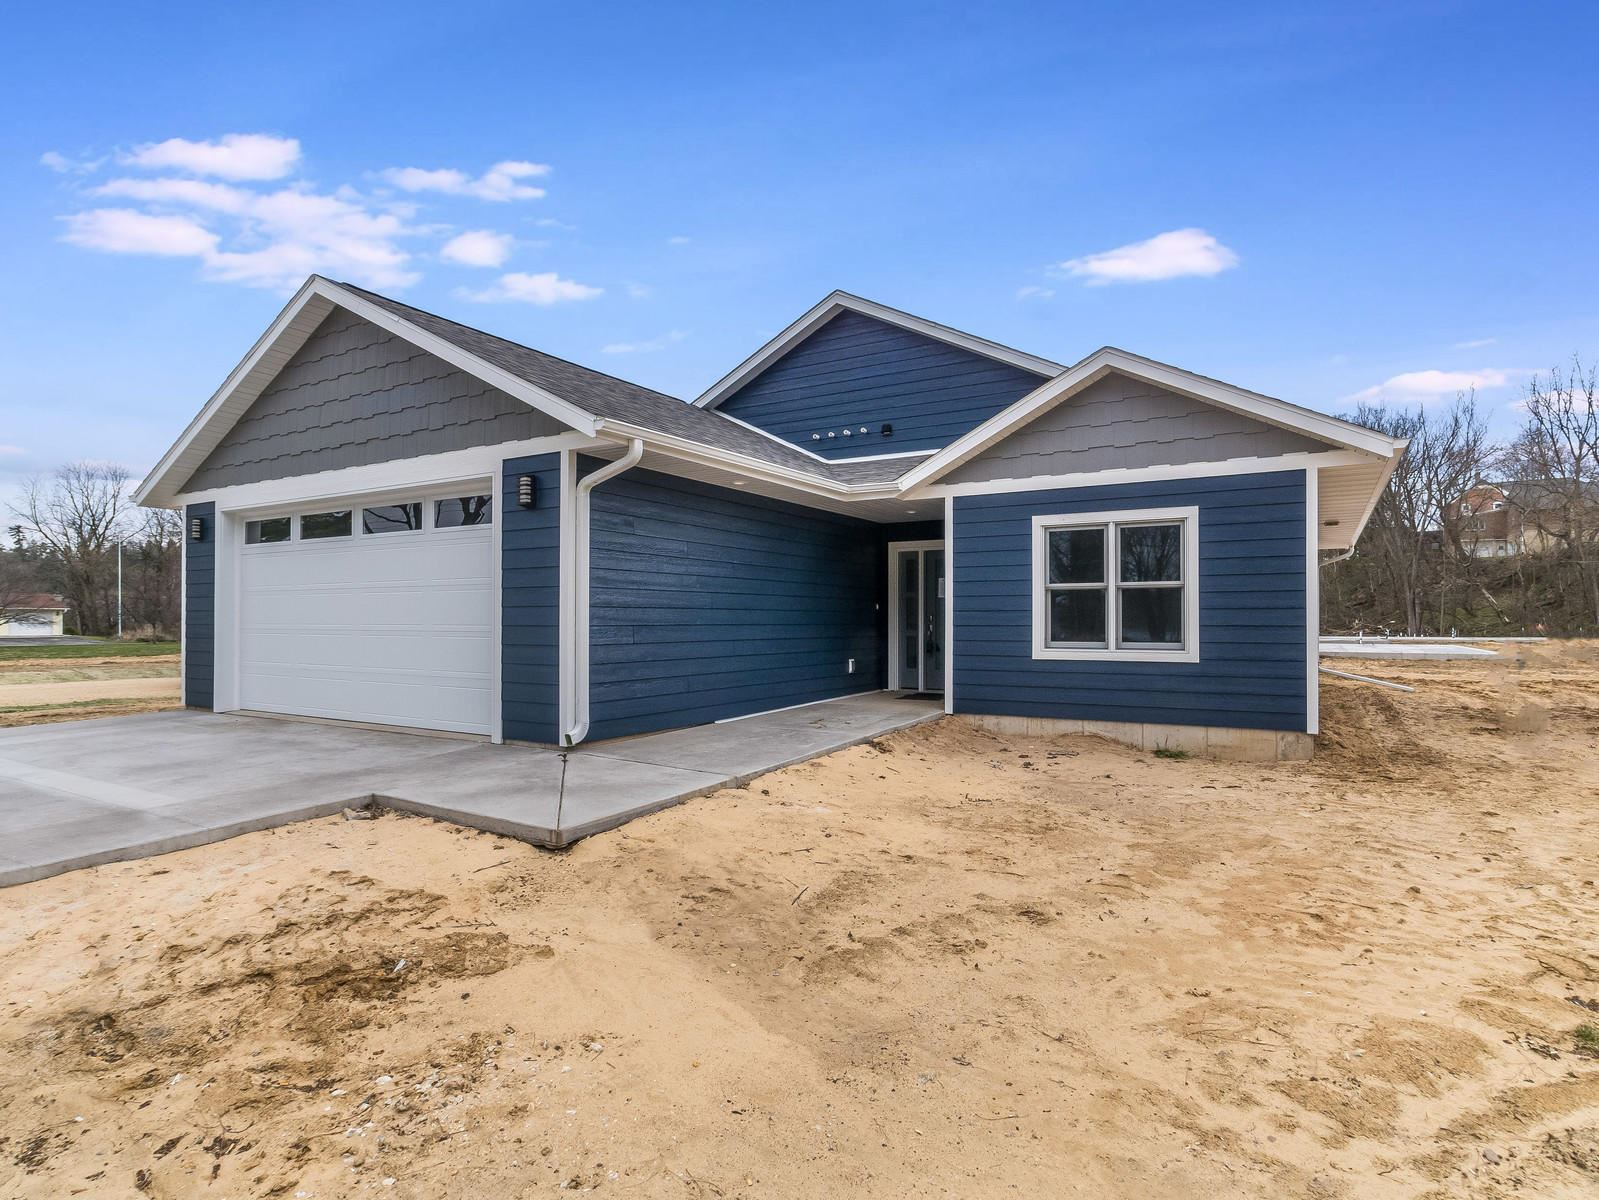 20153 Hammer Ave, Galesville, WI 54630 - MLS#: 1671727